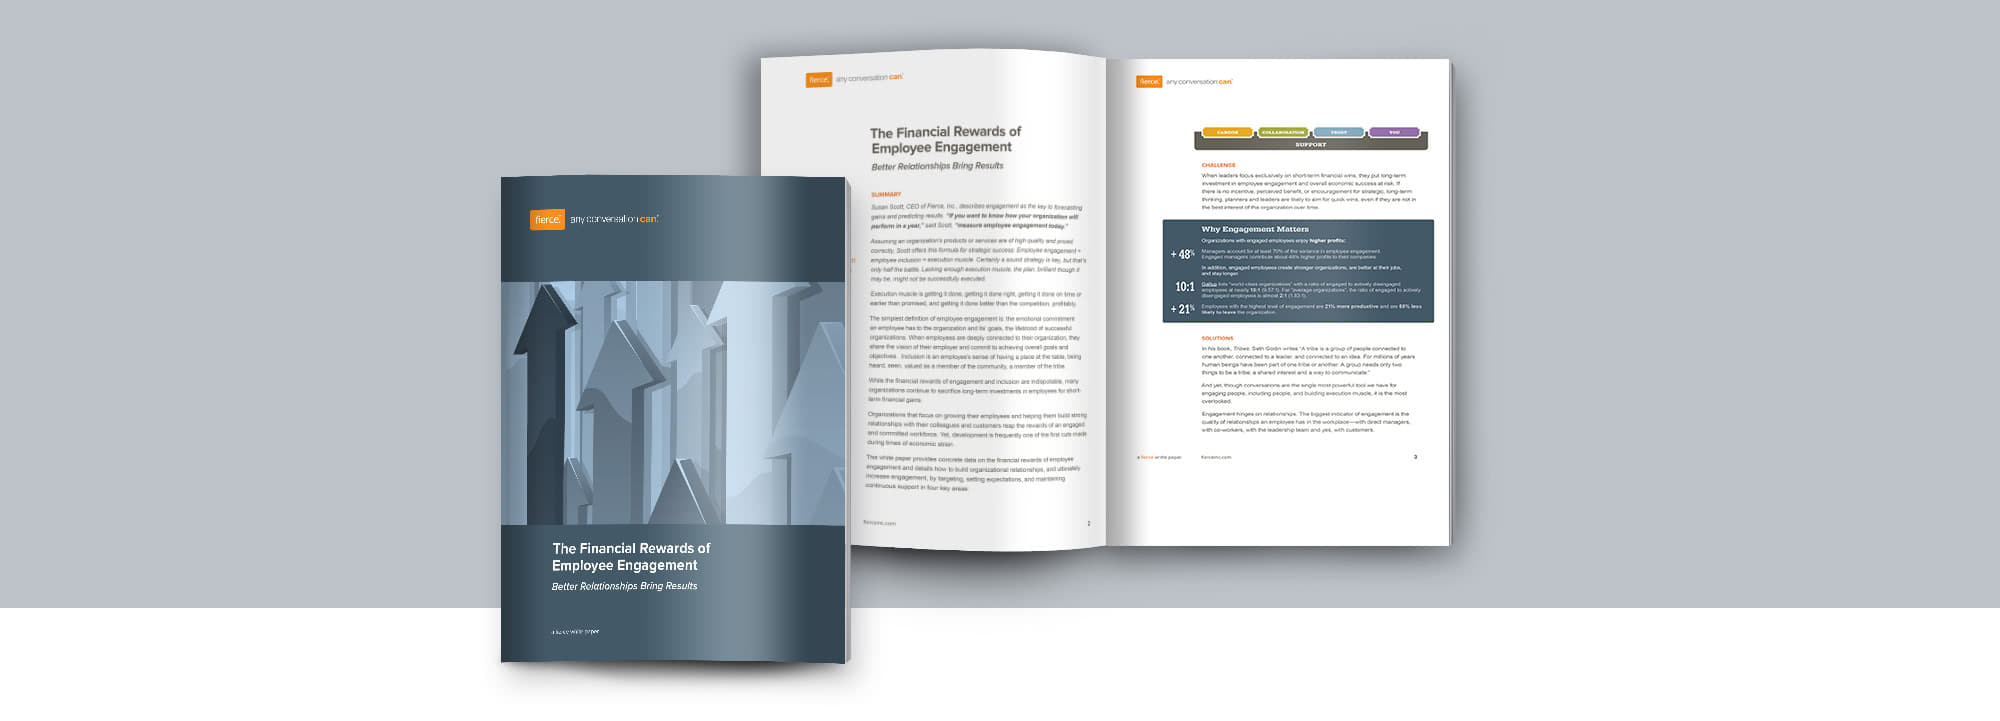 Fierce Conversations Whitepaper The Financial Rewards of Employee Engagement